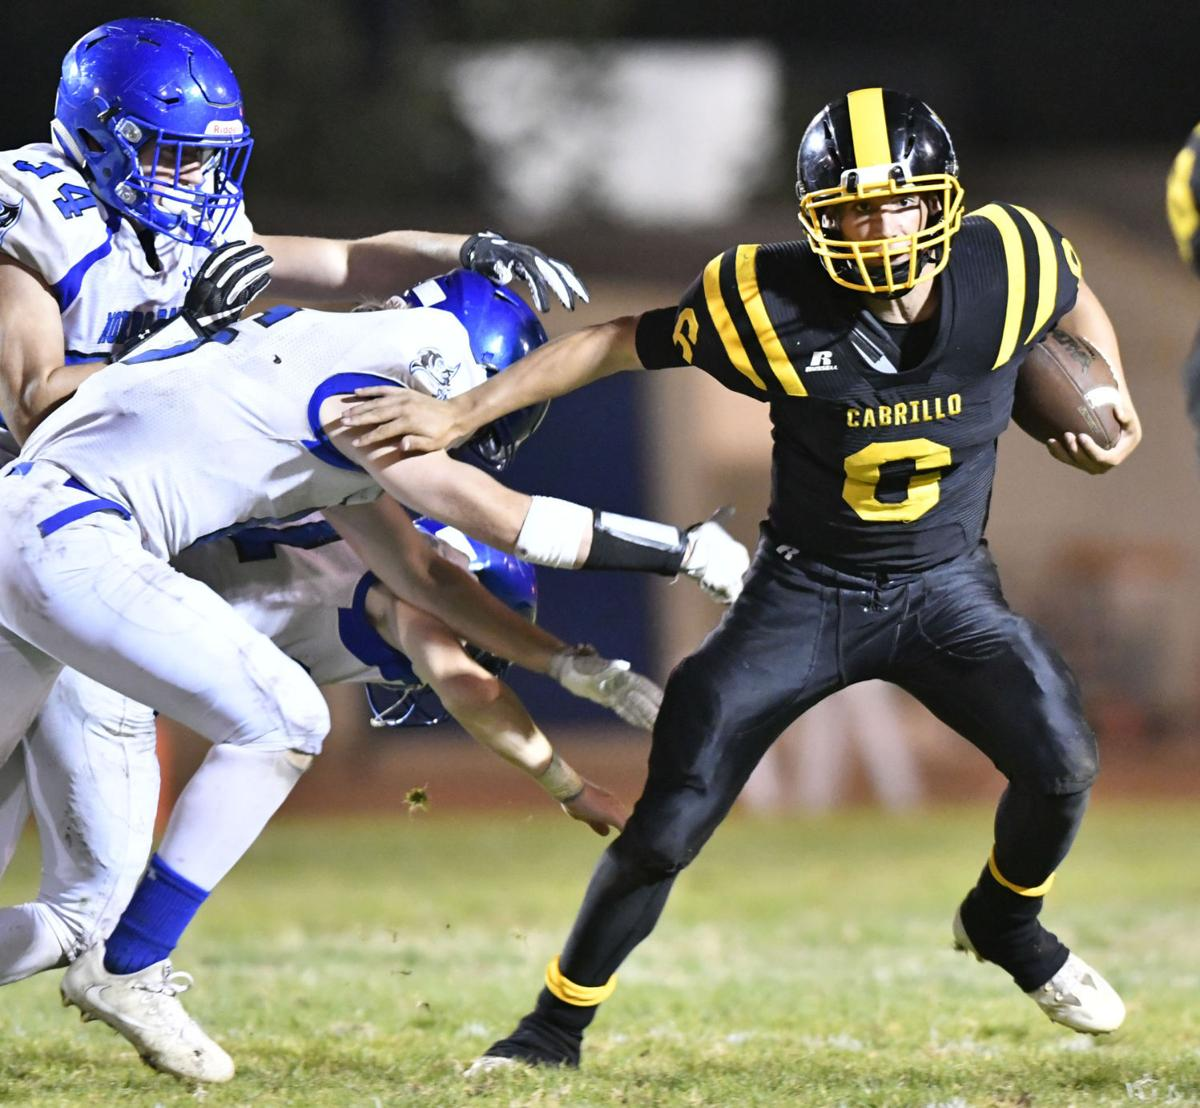 092917 MB Cabrillo football 01.jpg